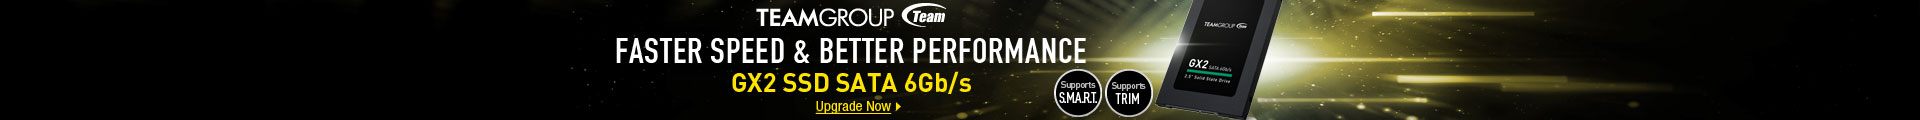 FASTER SPEED & BETTER PERFORMANCE